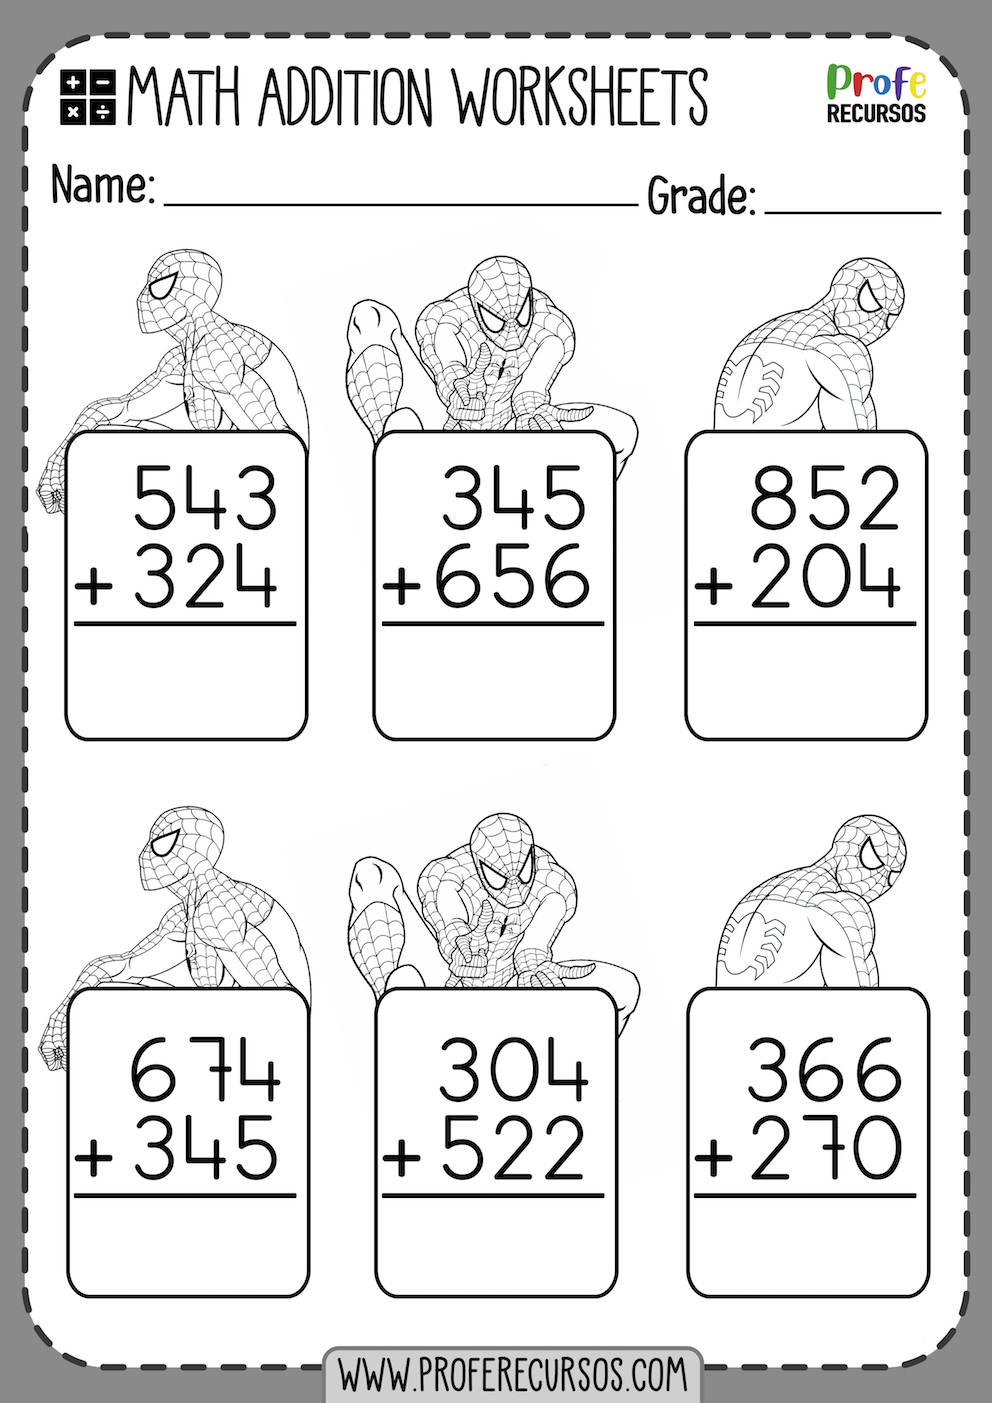 Add and Color Addition Worksheets